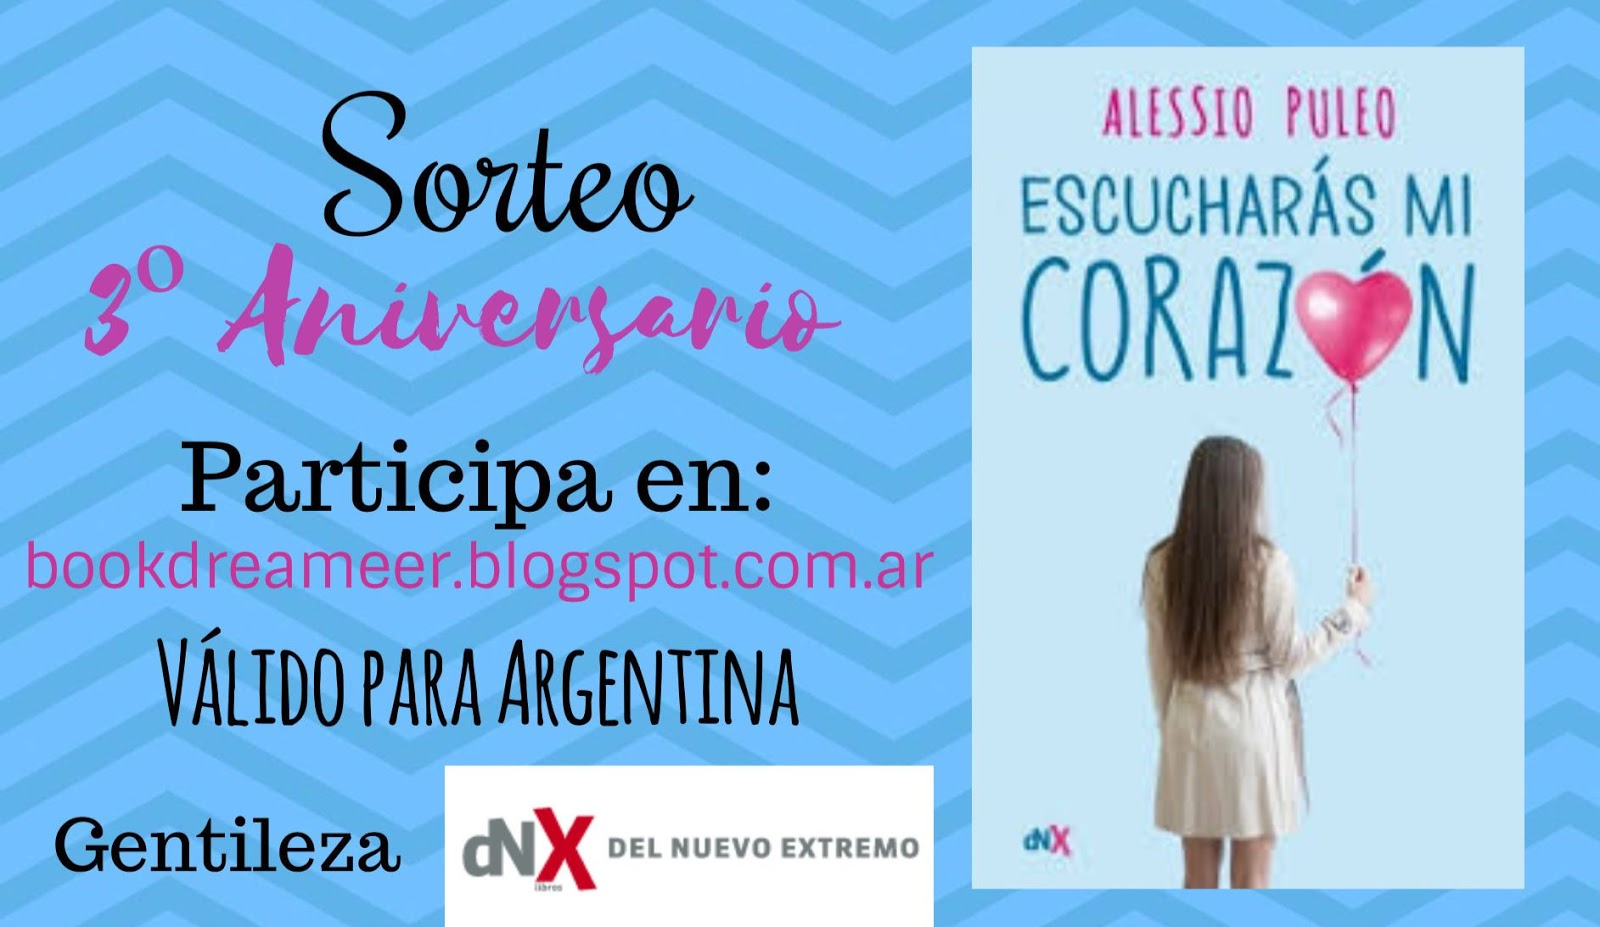 https://bookdreameer.blogspot.com/2017/07/sorteo-3-aniversario-escucharas-mi.html